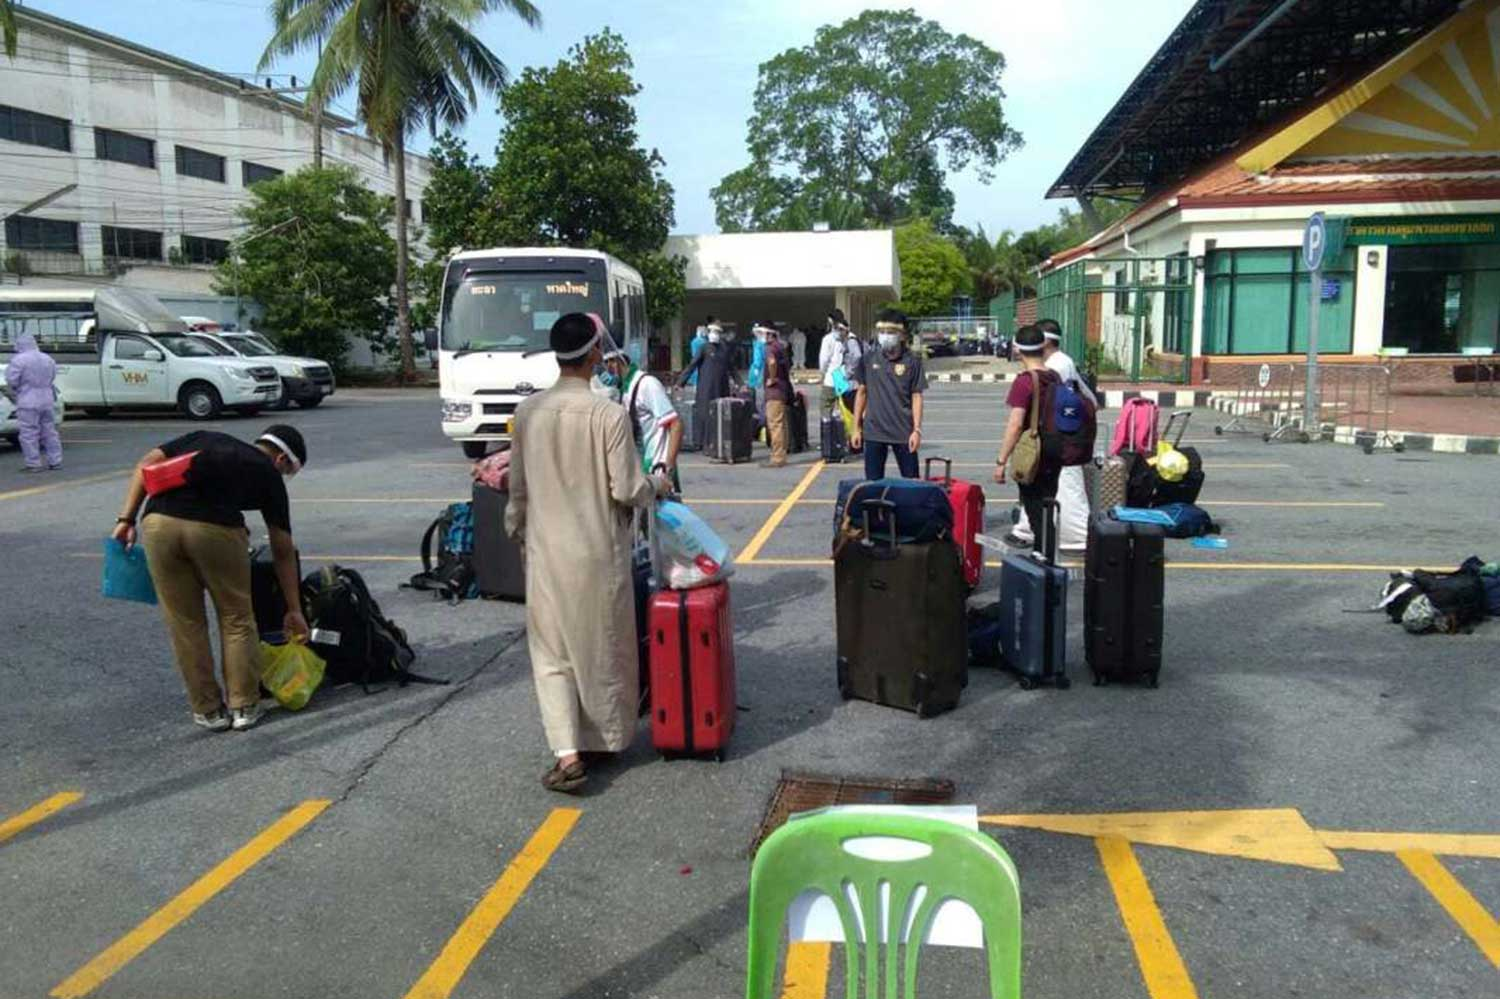 Twenty-one Thais from Saudi Arabia arrive in Songkhla province on Thursday. They were sent to state quarantine facilities in their home provinces. (Photo: Assawin Pakkawan)